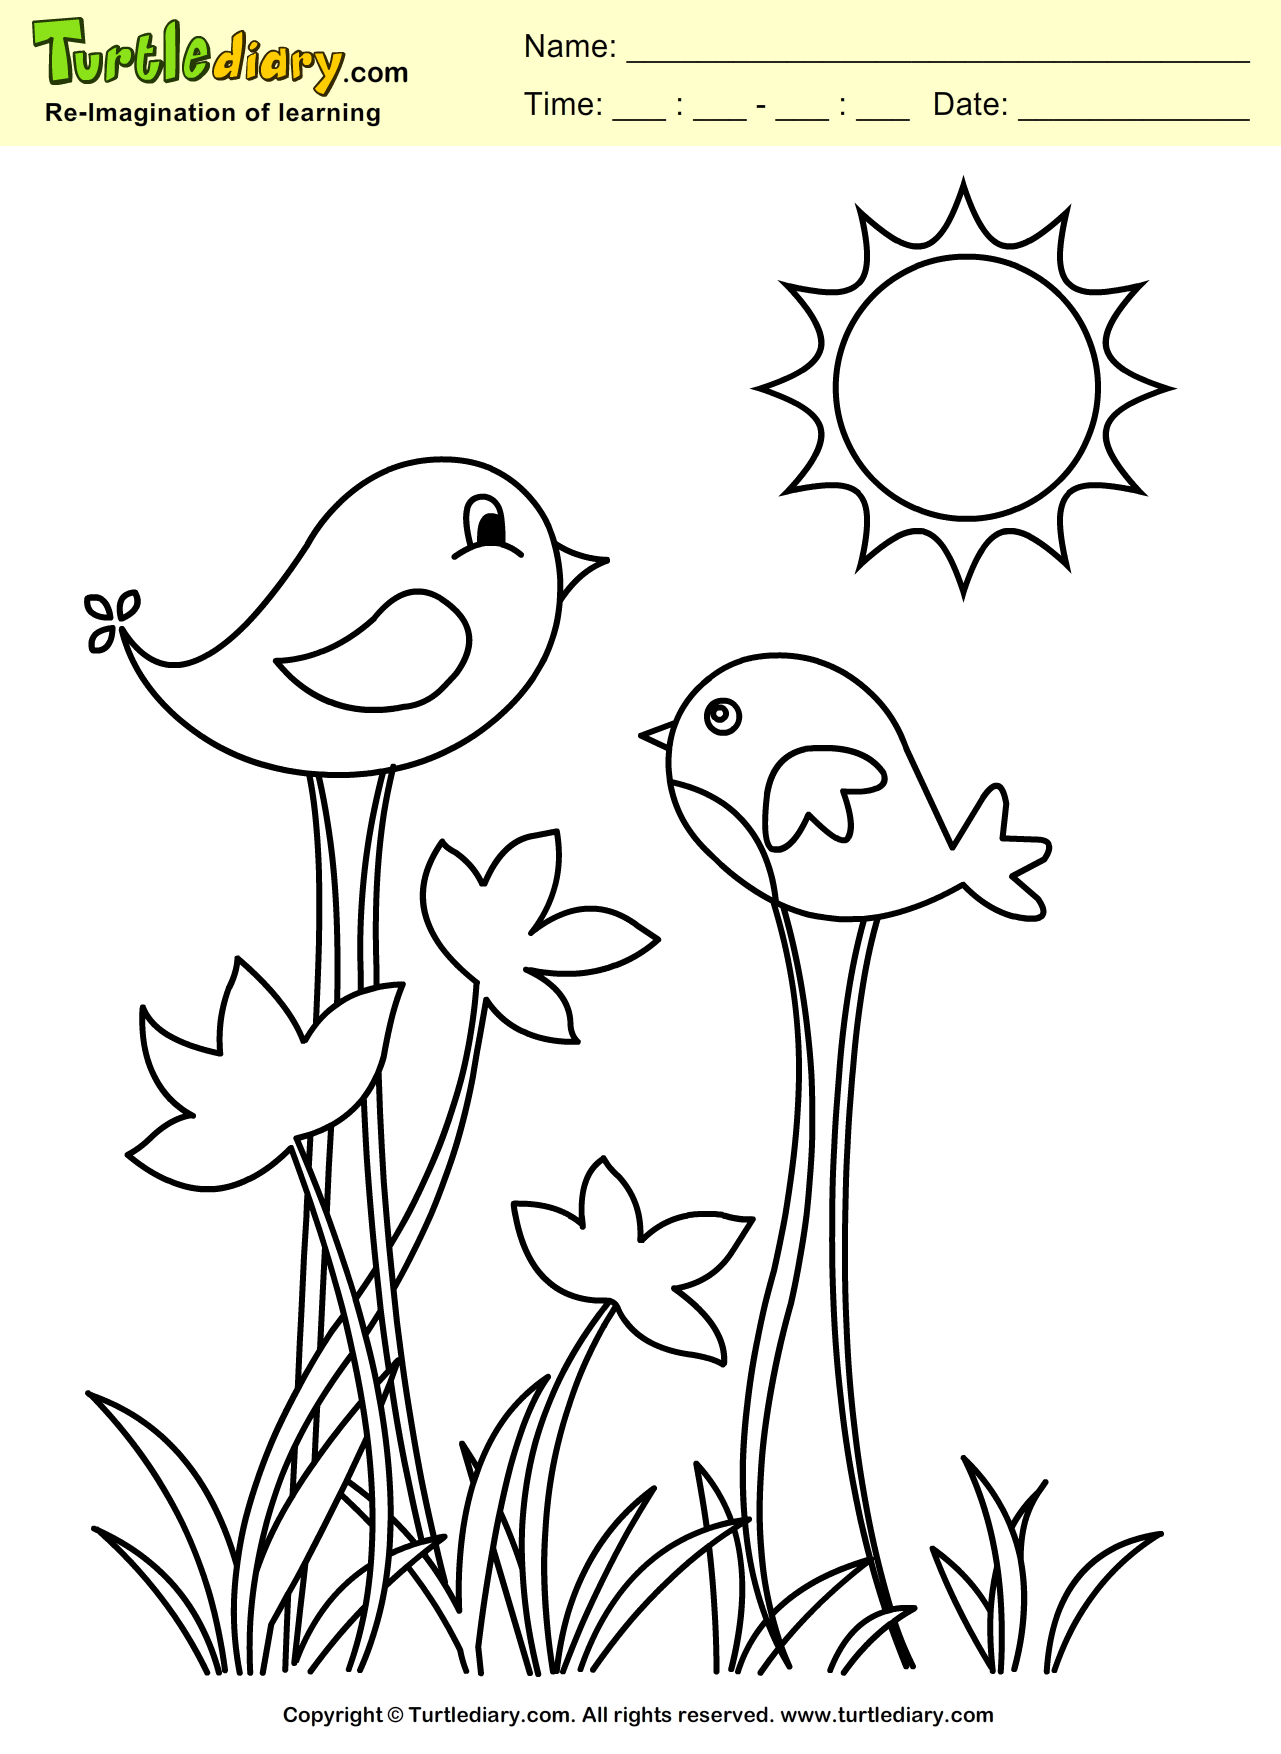 Download Print And Color Turtle Diary S Spring Bird